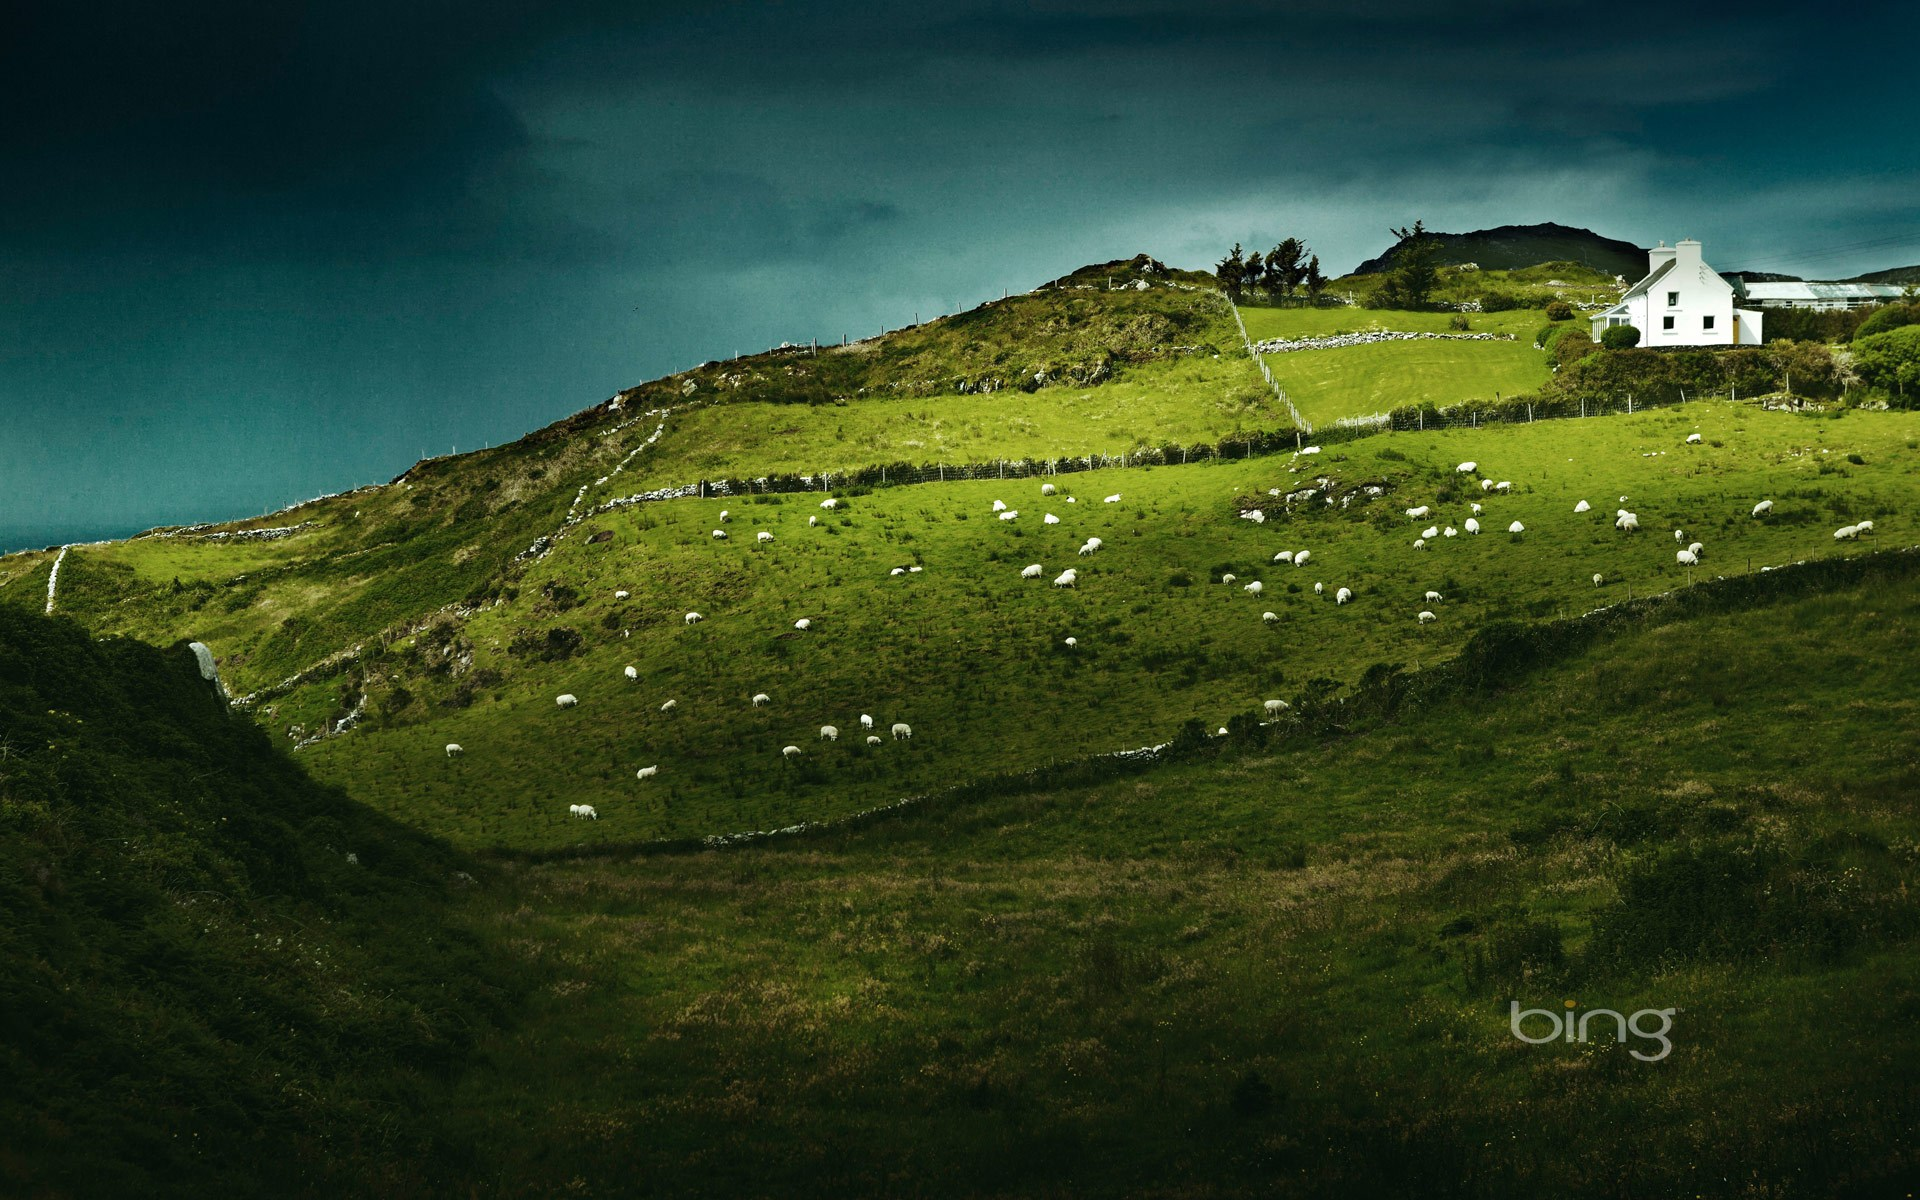 ireland wallpaper 1920x1440 - photo #41